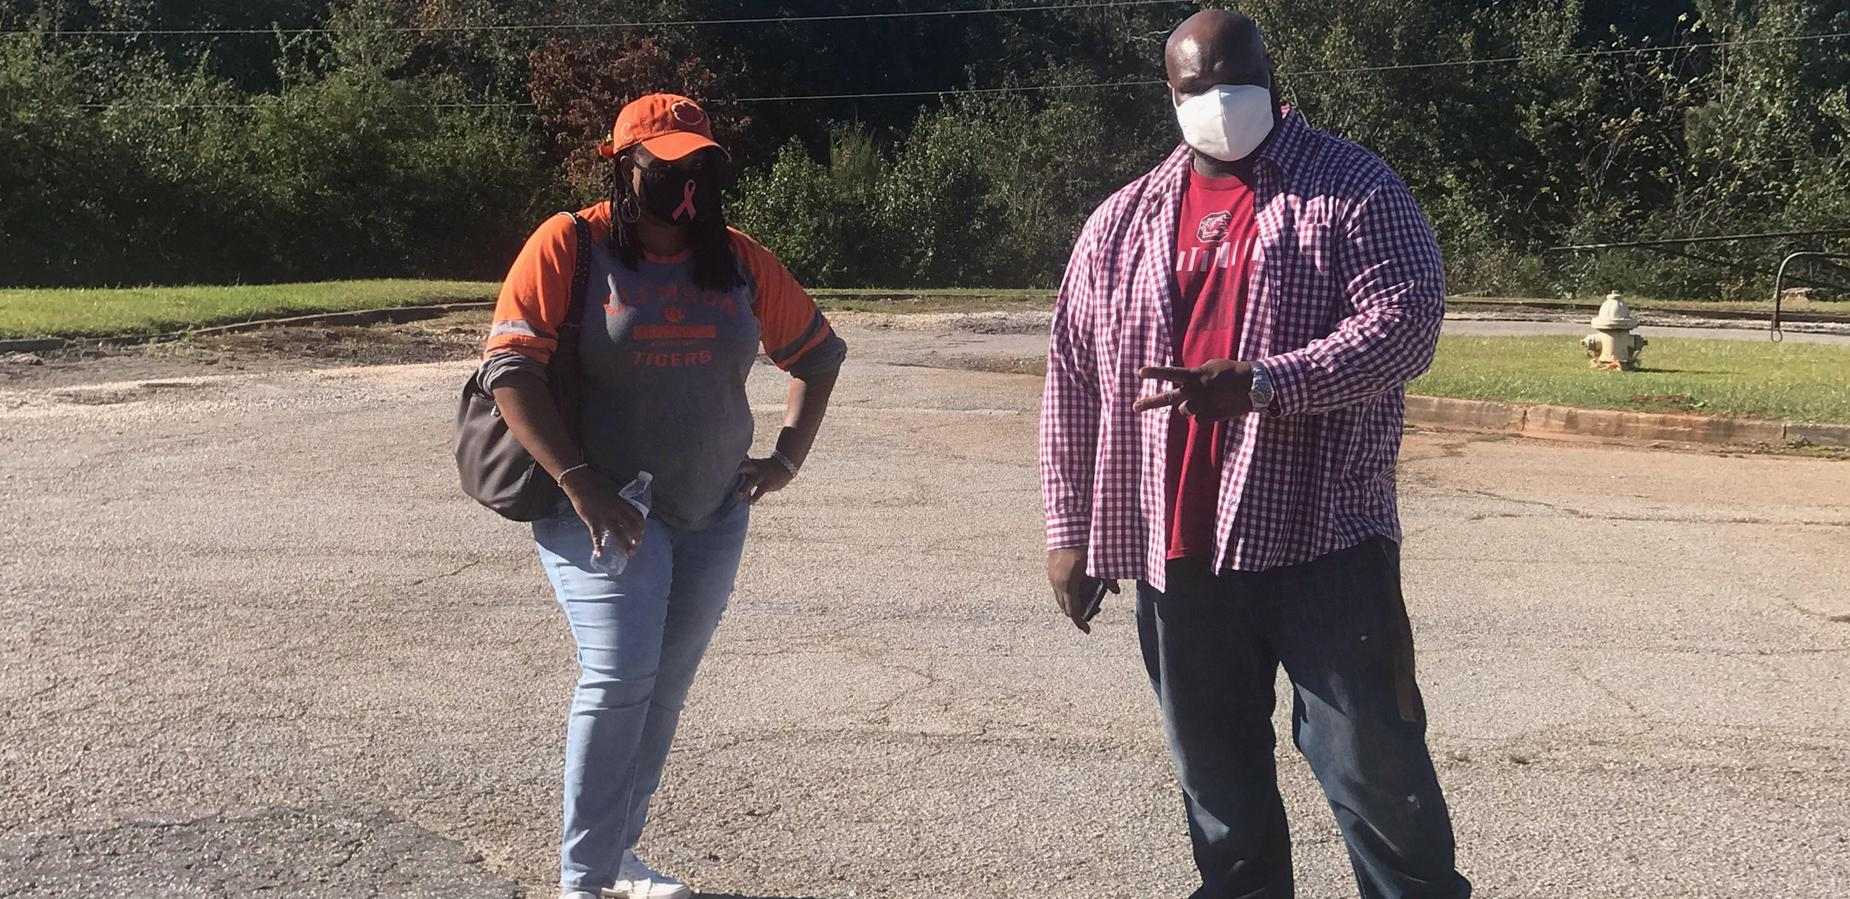 Ms. Gratic and Mr. Bobian in Clemson and USC gear